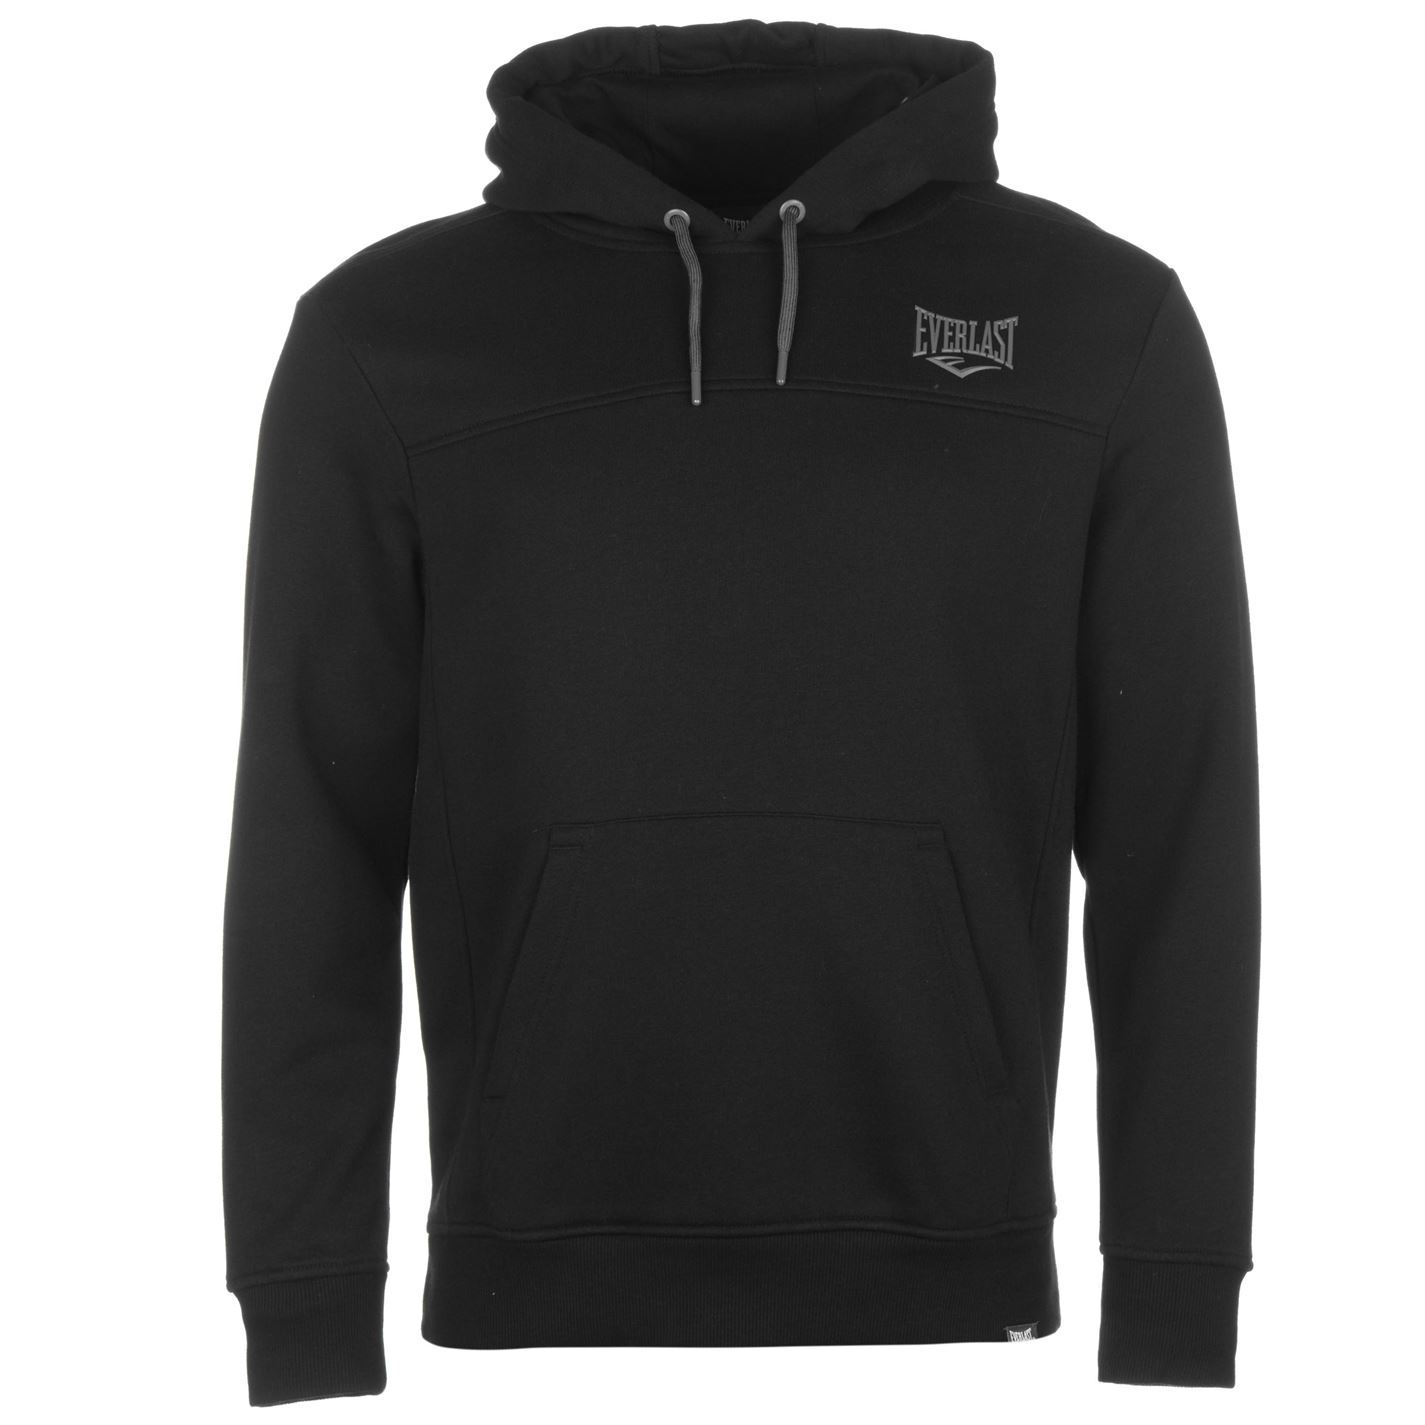 Everlast-Logo-Pullover-Hoody-Mens-OTH-Hoodie-Hooded-Top-Sweatshirt-Sweater thumbnail 3